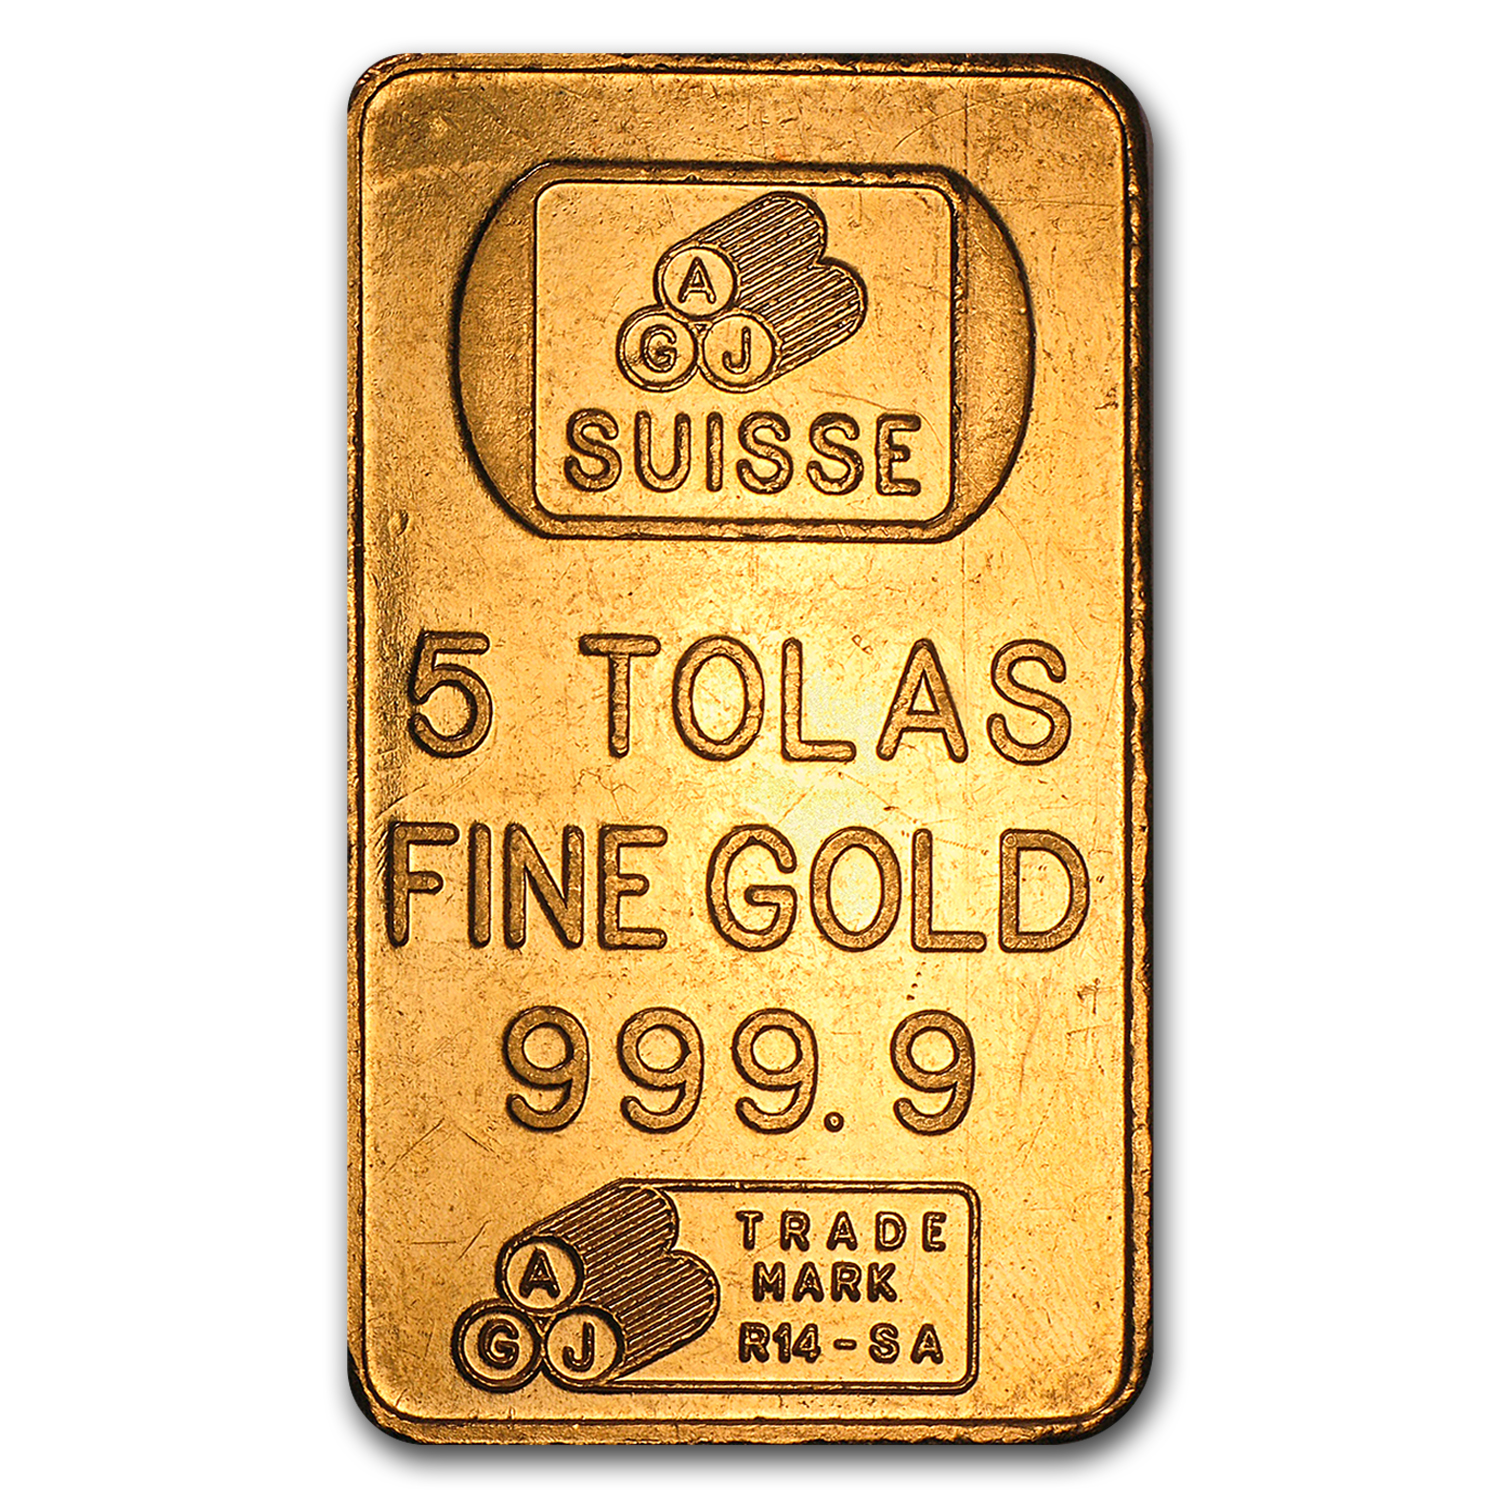 5 Tolas Gold Bars - Secondary Market (1.875 oz)